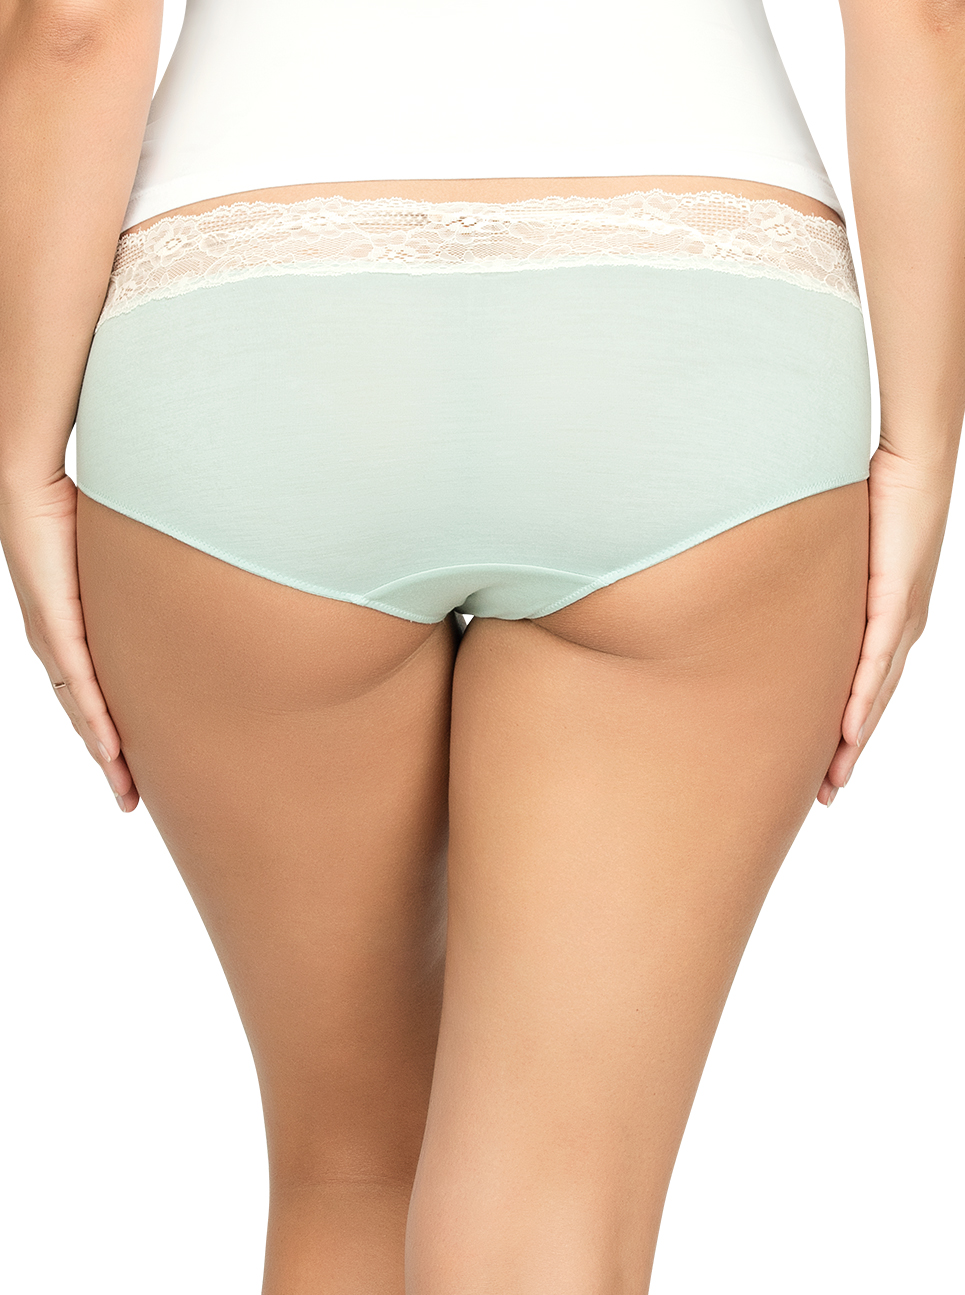 ParfaitPanty SoEssential HipsterPP503 Surf Back - Panty So Essential Hipster - Surf- PP503